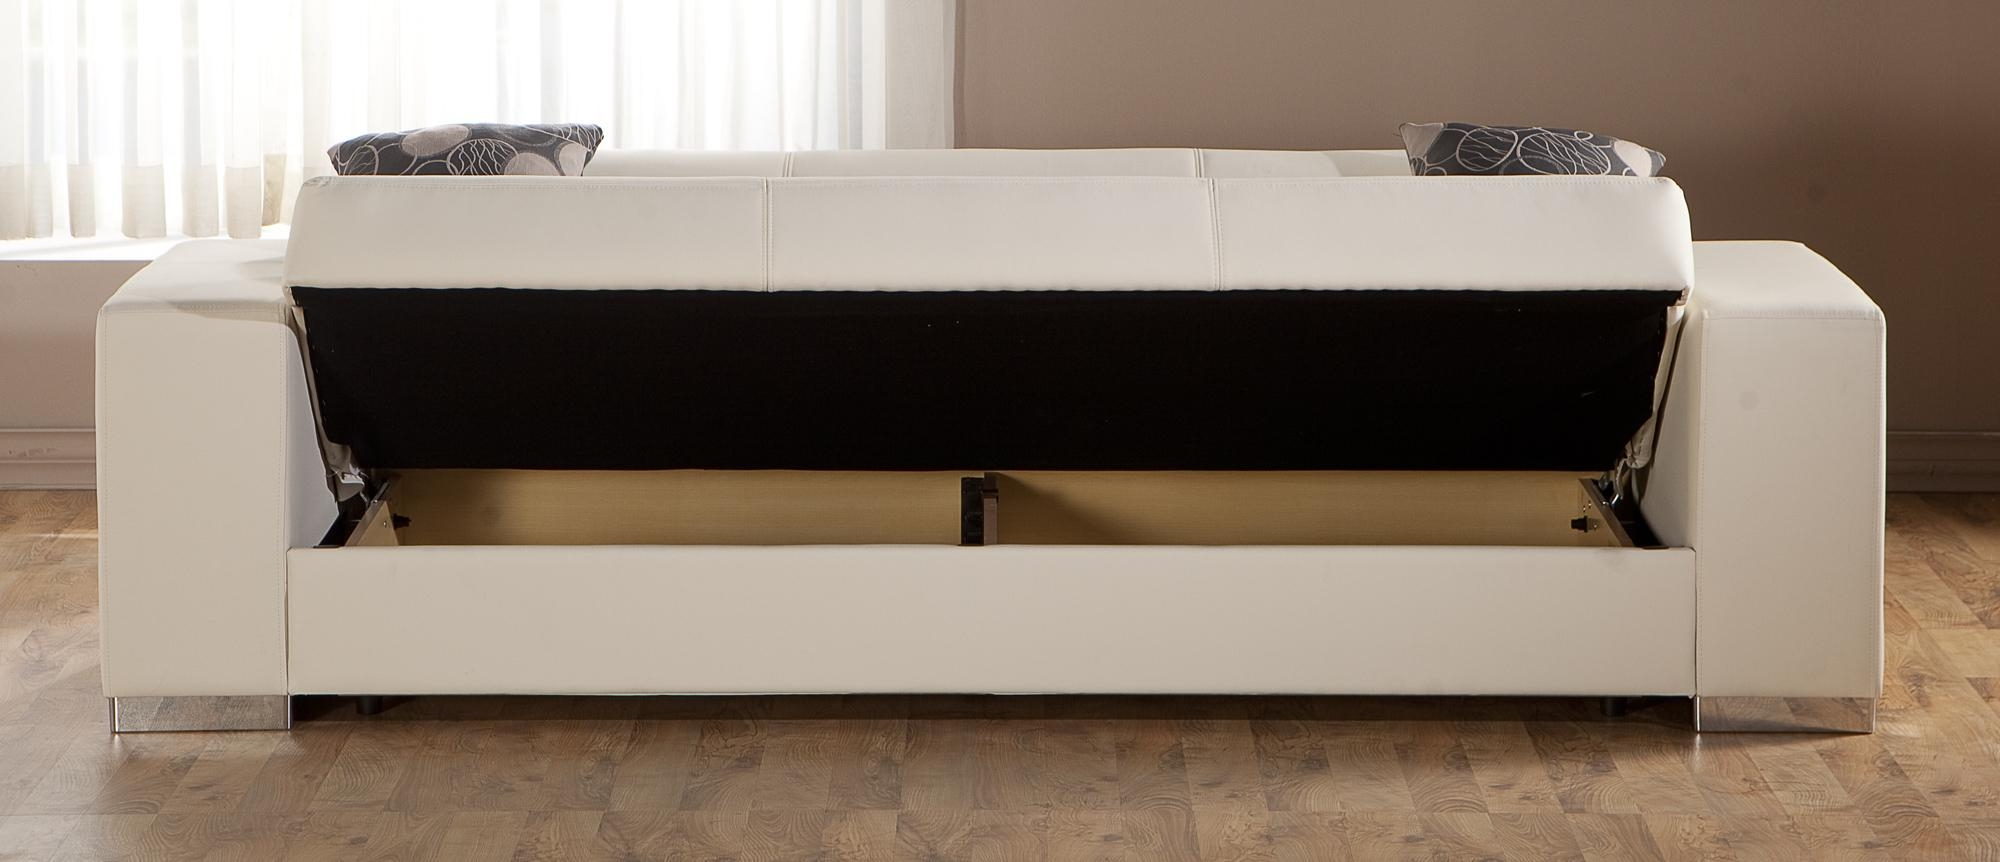 Bedding Convertible Sofa Bed India Ikea For Sale Philippines Pertaining To Castro Convertible Sofas (View 12 of 20)